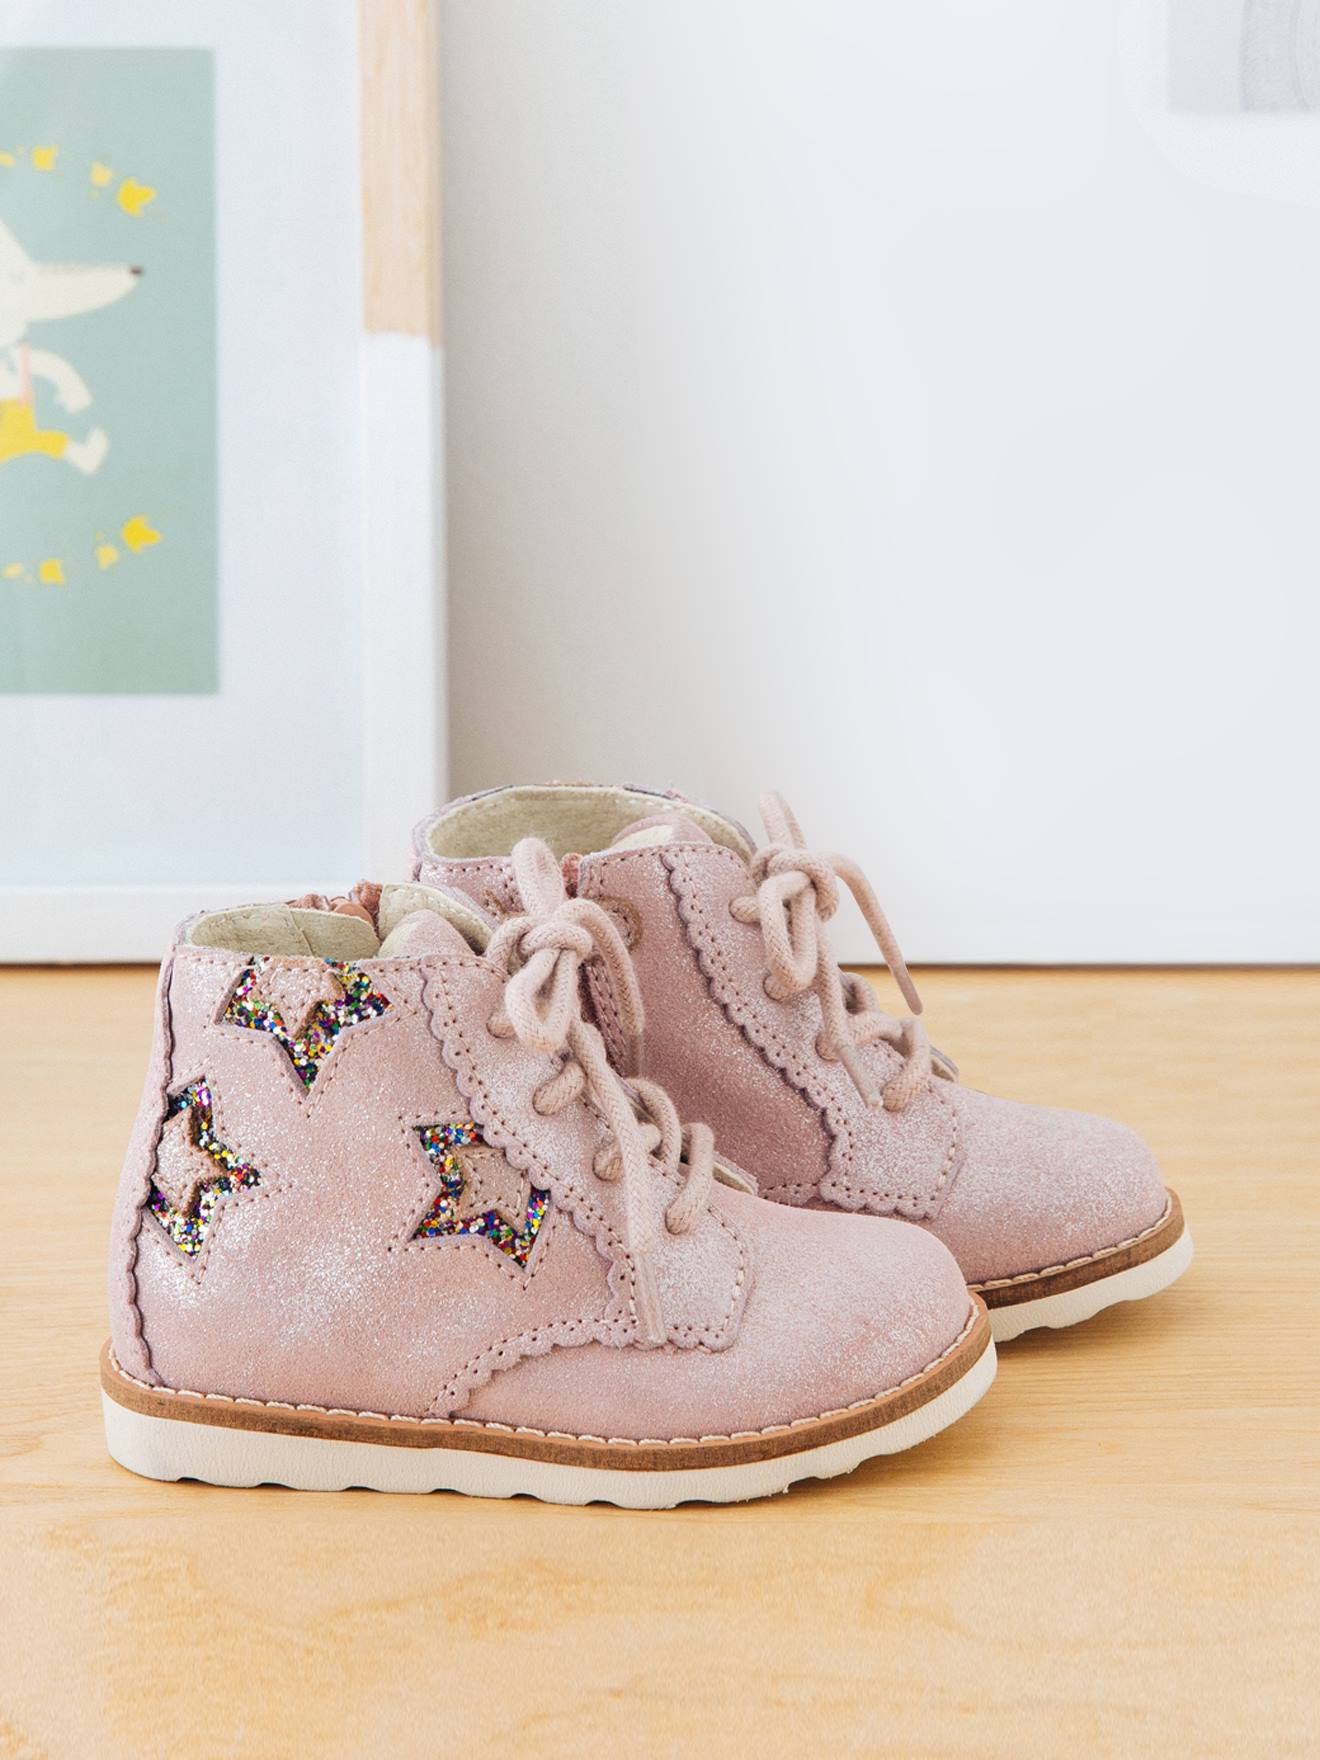 Baby Shoes : Infant Shoes : Target